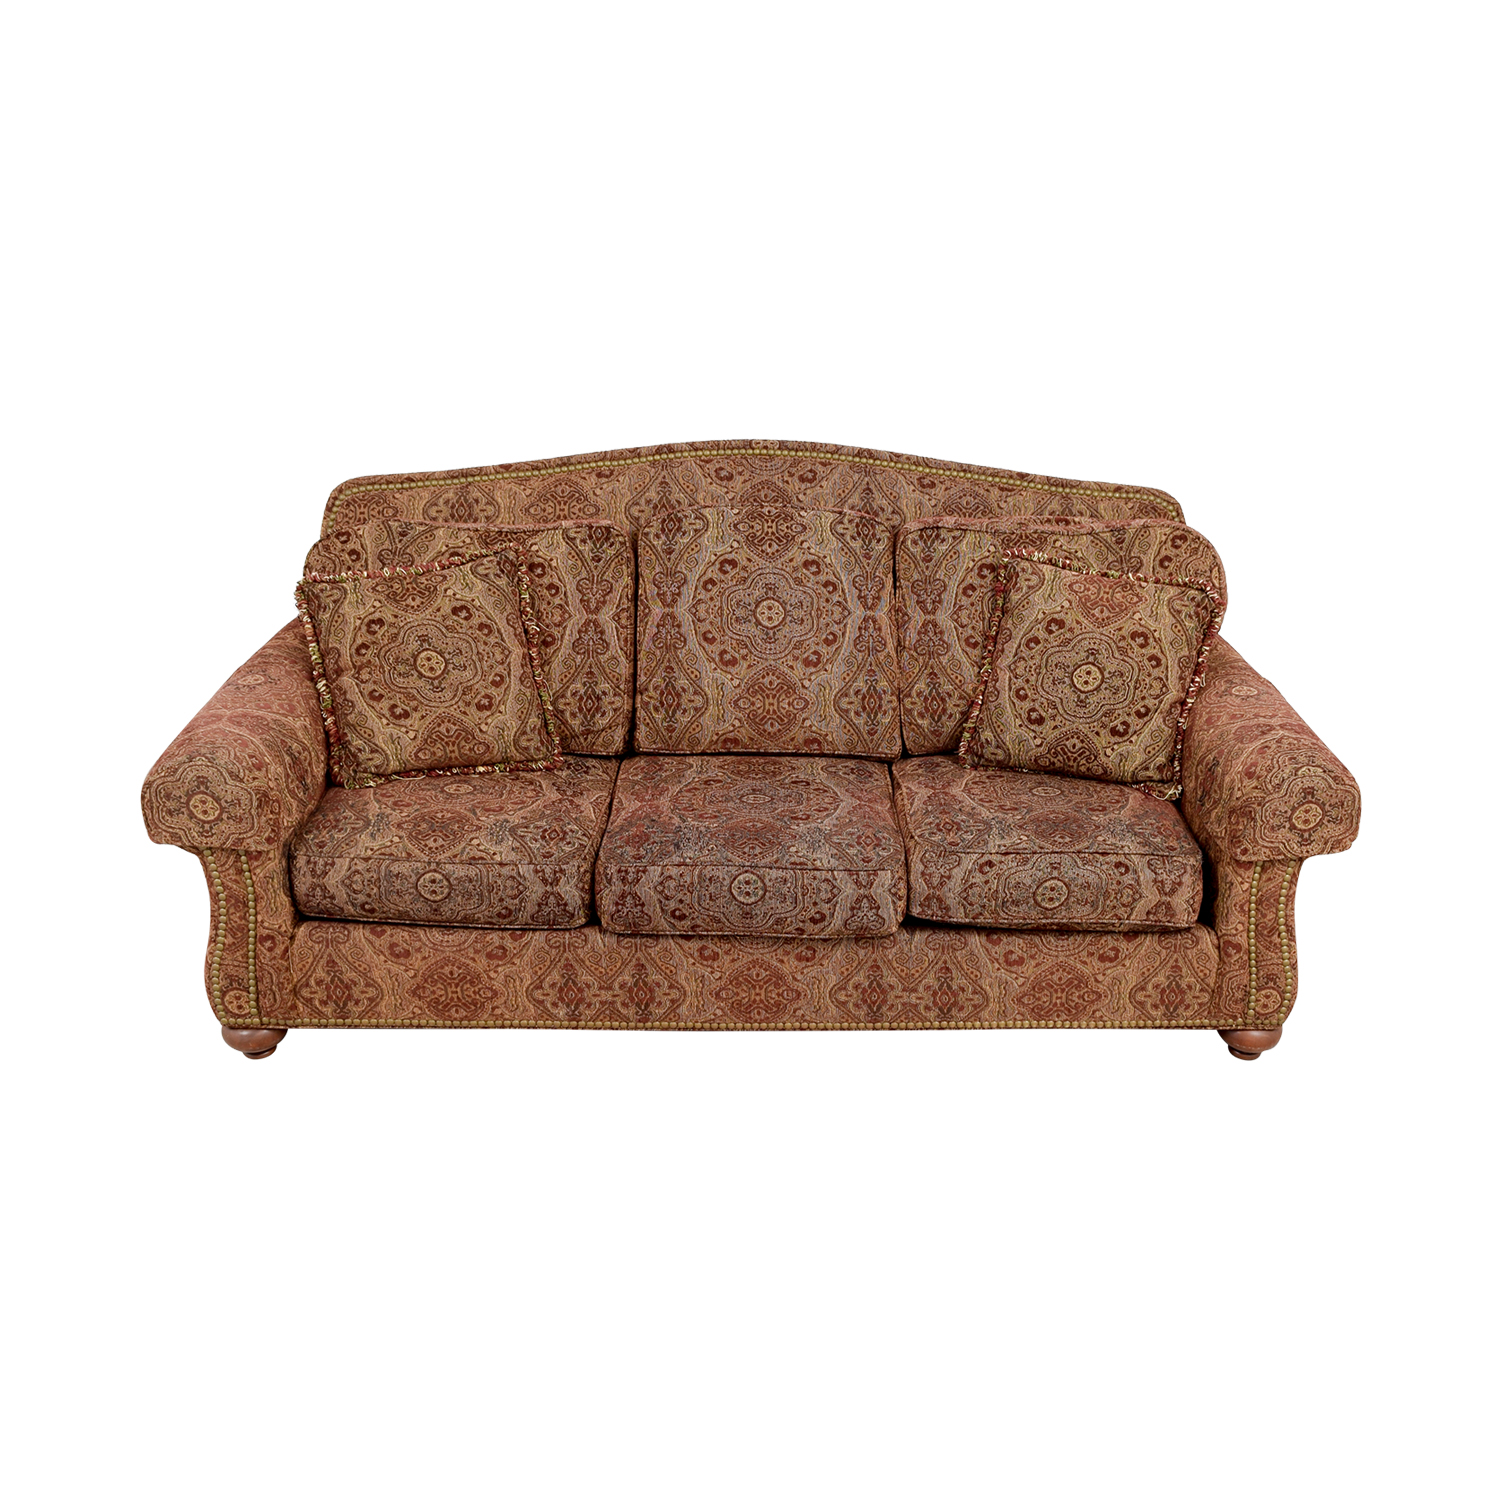 Ethan Allen Ethan Allen Whitney Paisley Nailhead Couch discount